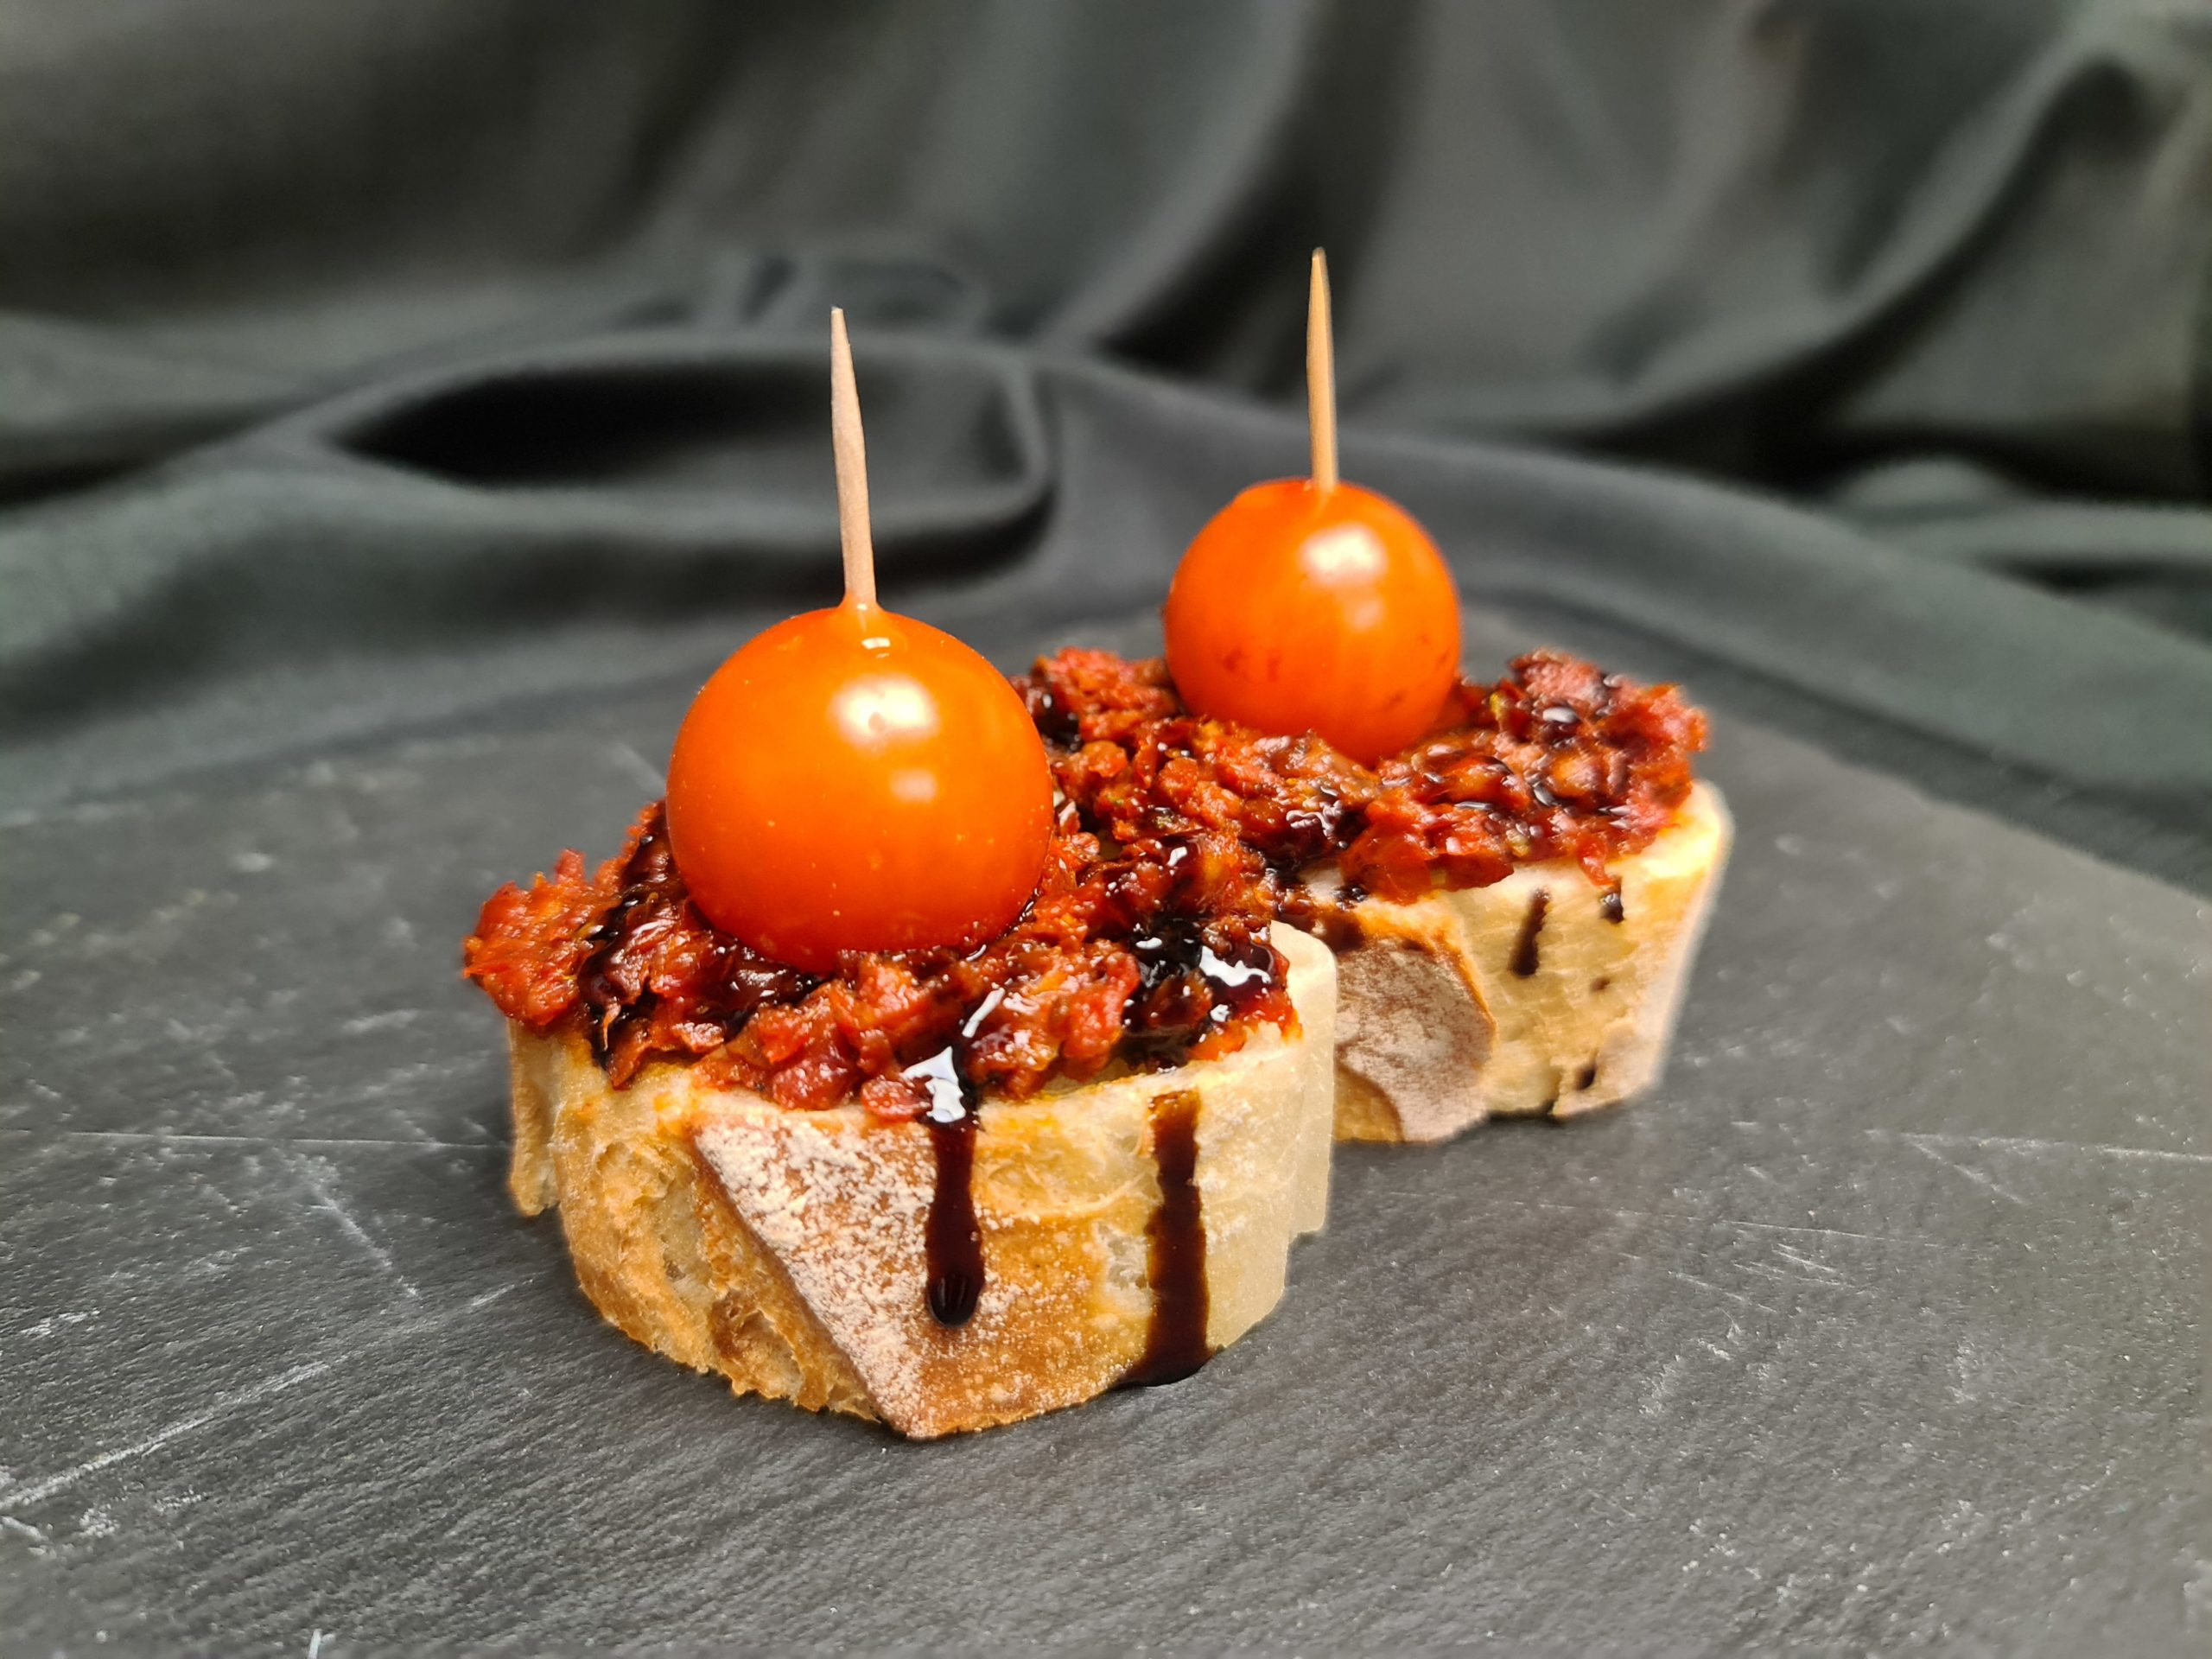 Red tapenade for business lunch